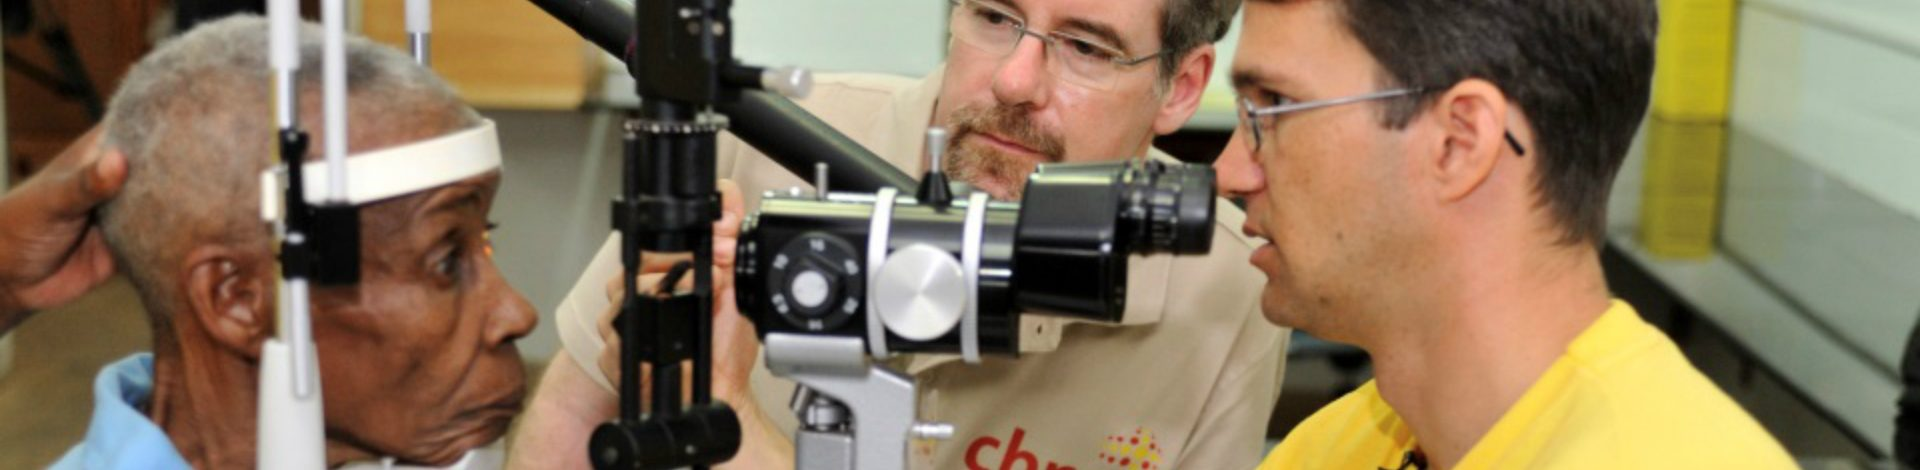 Heiko from CBM supported project in Tanzania examining someone's sight for glaucoma.